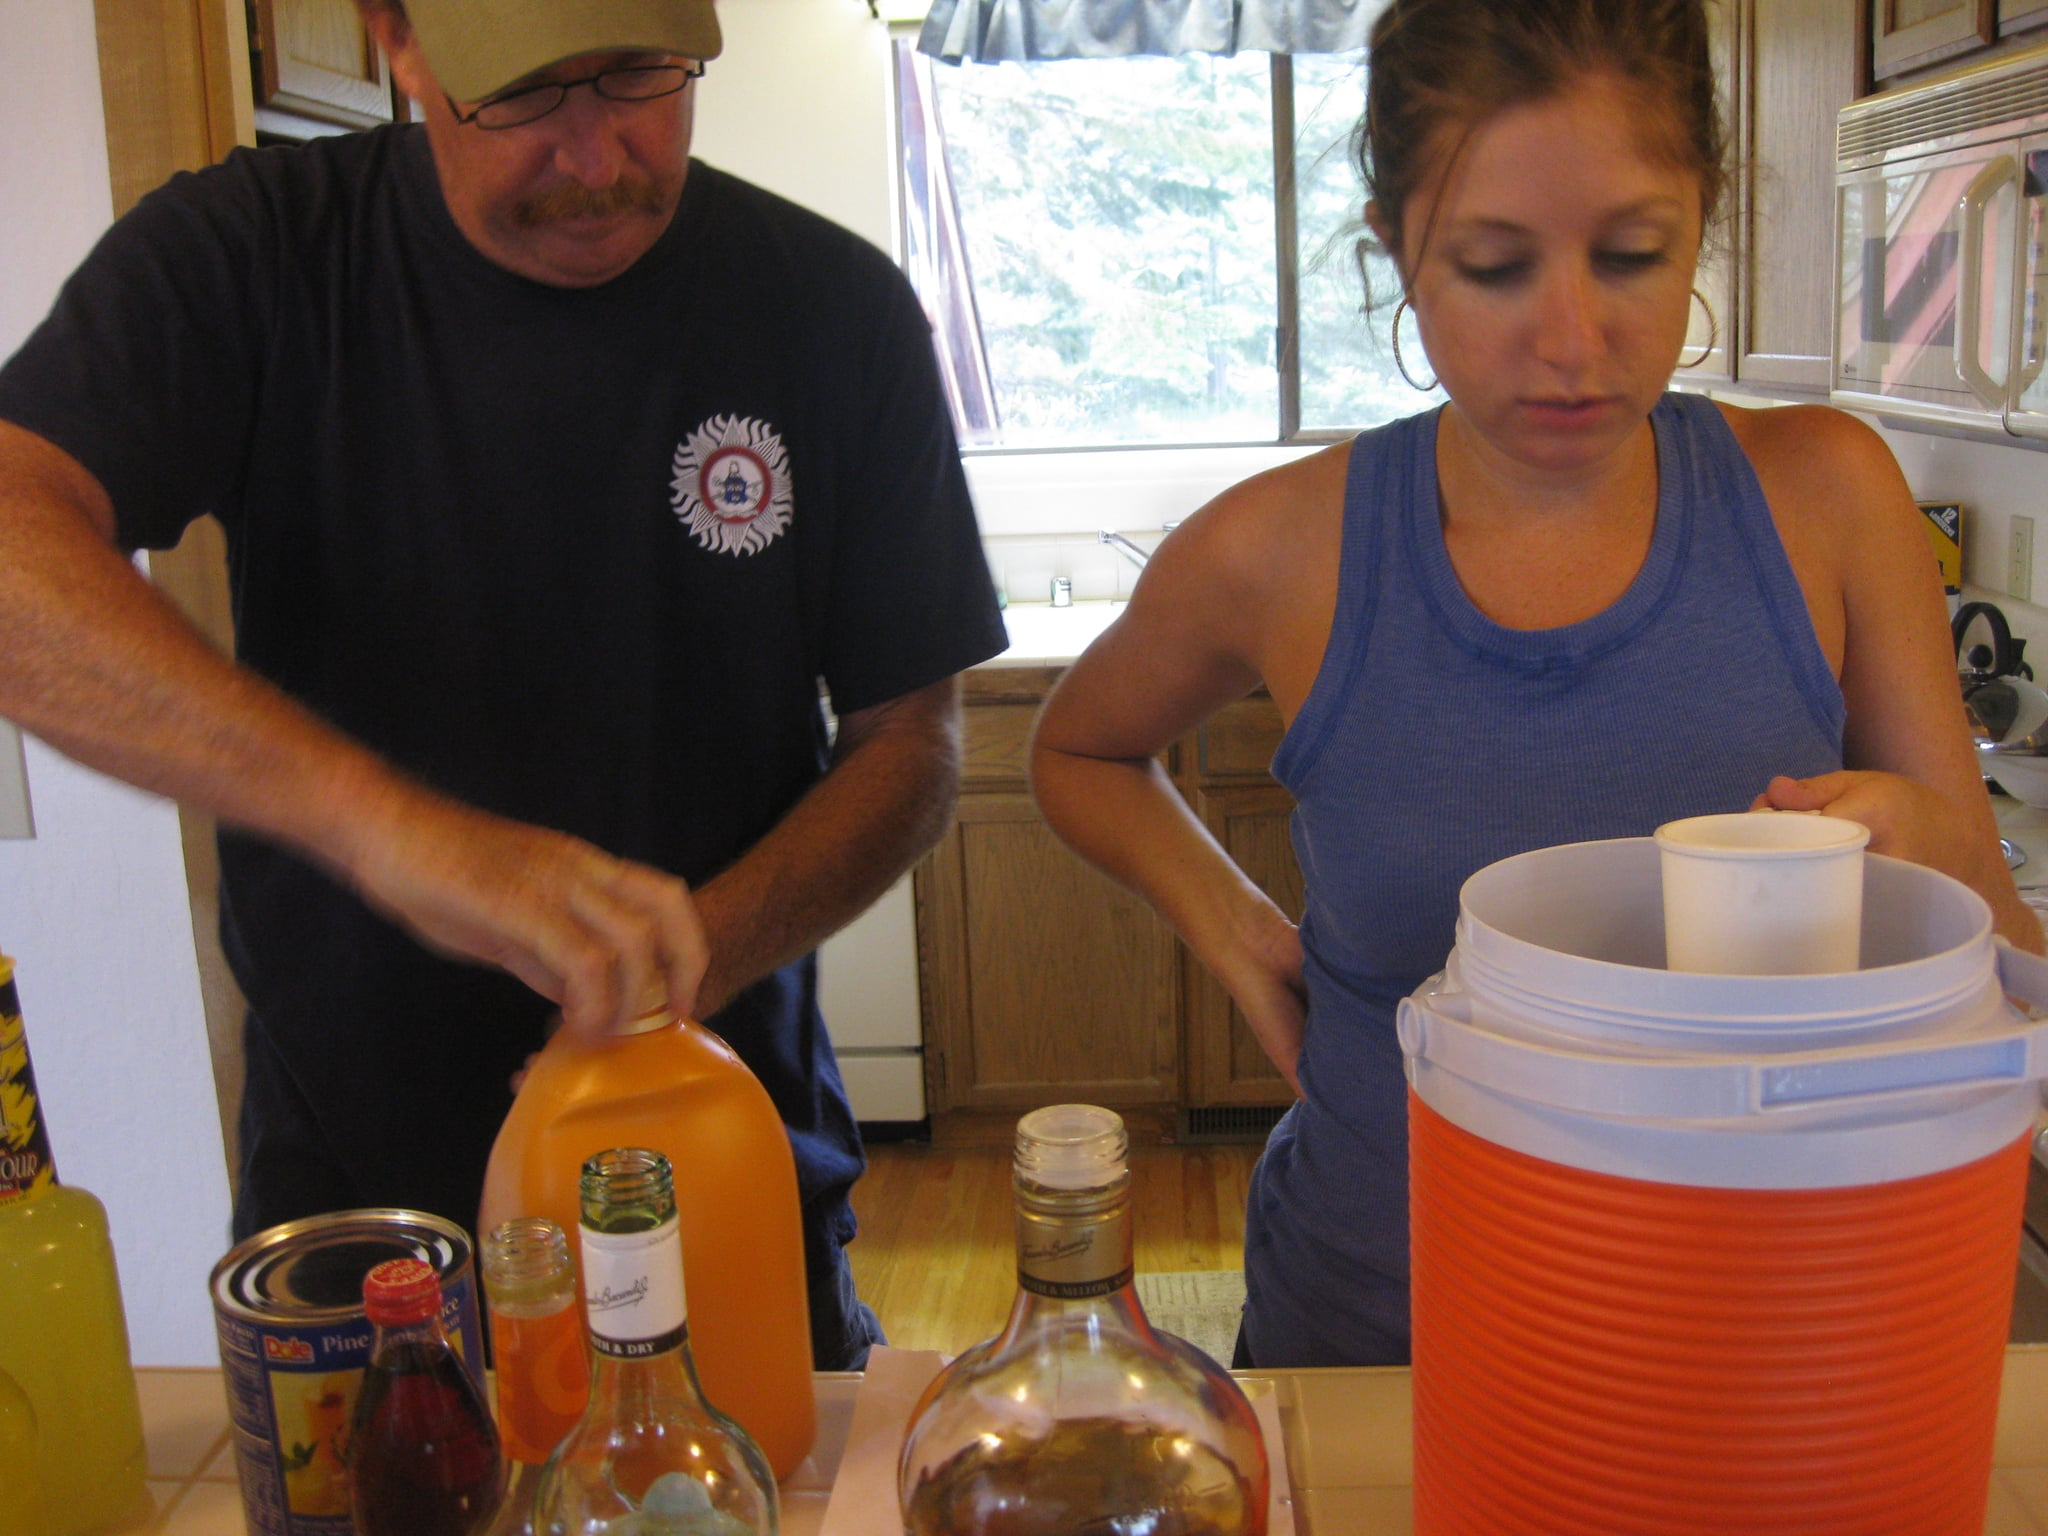 My dad helped me figure out the correct proportions of alcohol to juice.